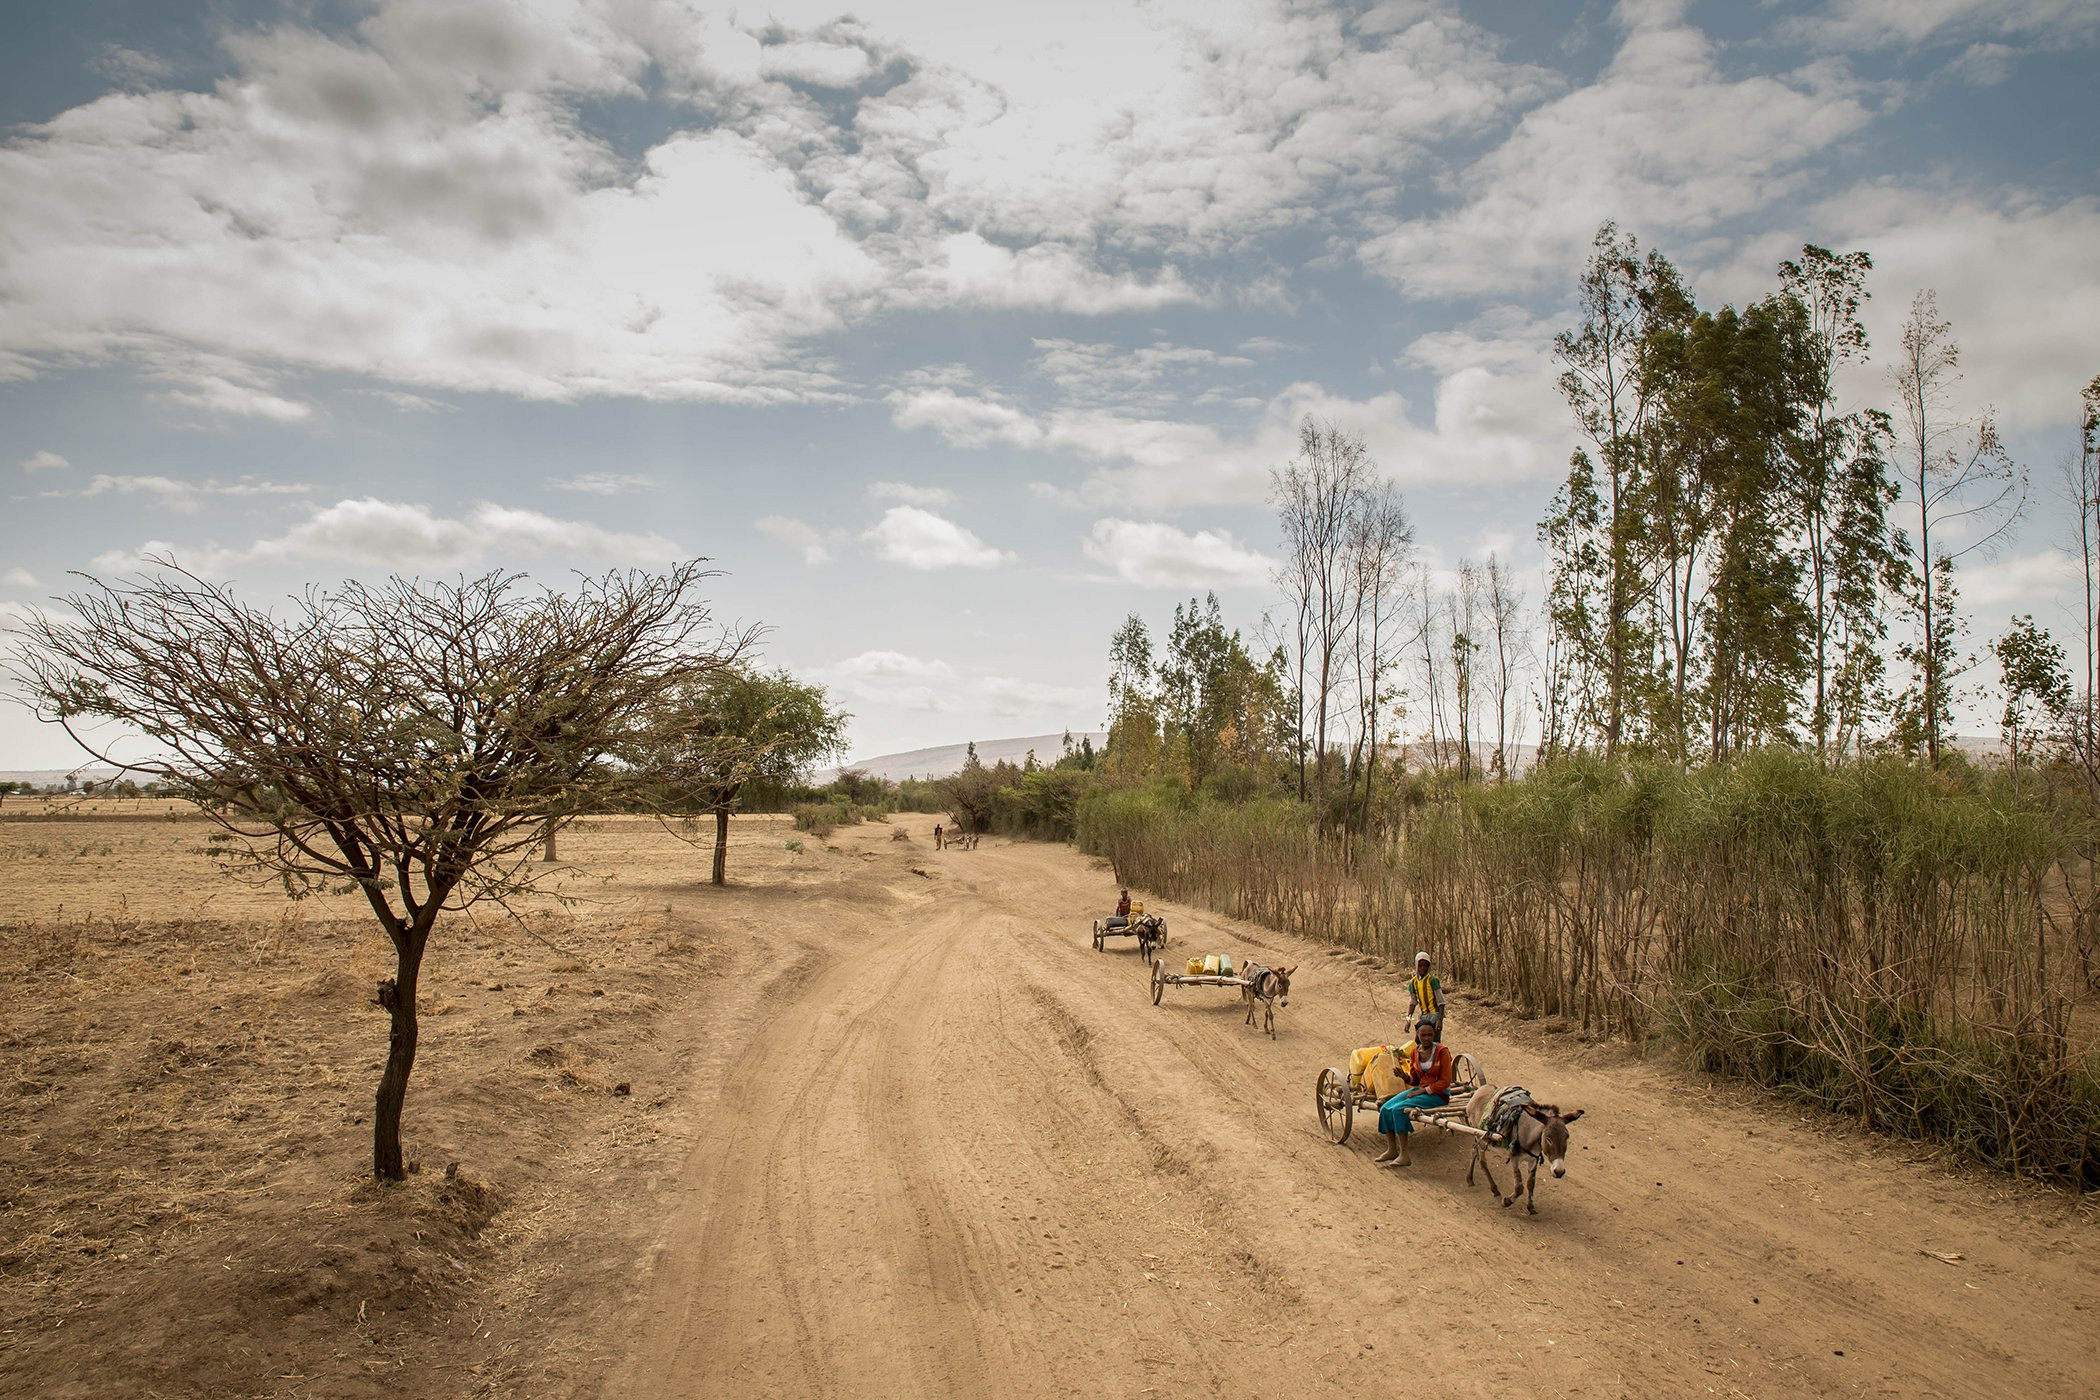 Climate-Change-Refugees-Ethiopia.jpg